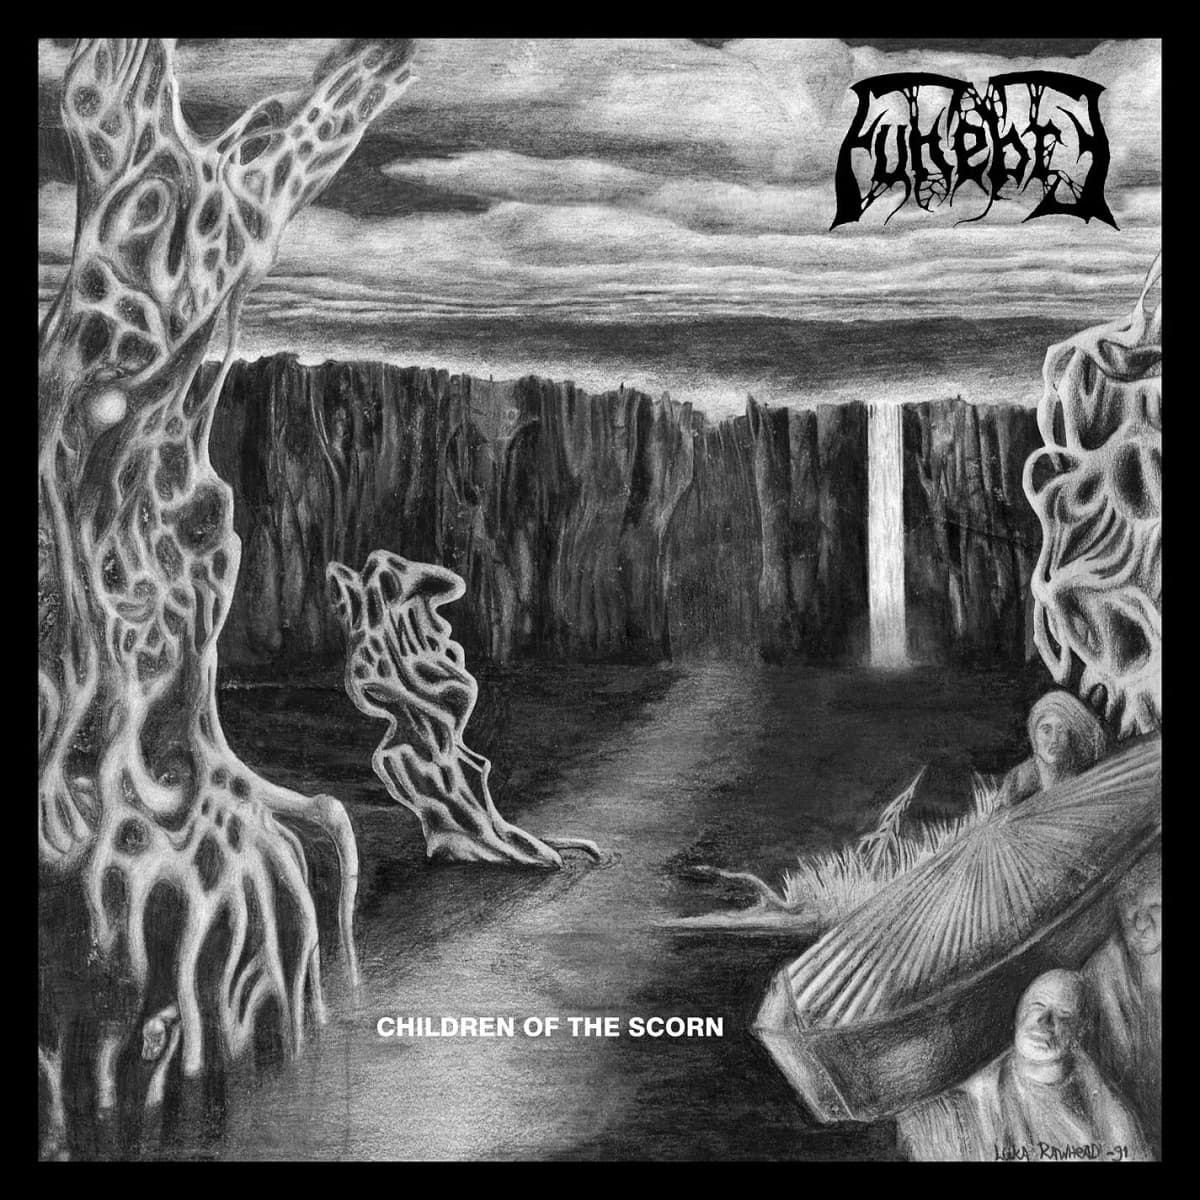 Rotting Ways to Misery, death metal, Funebre